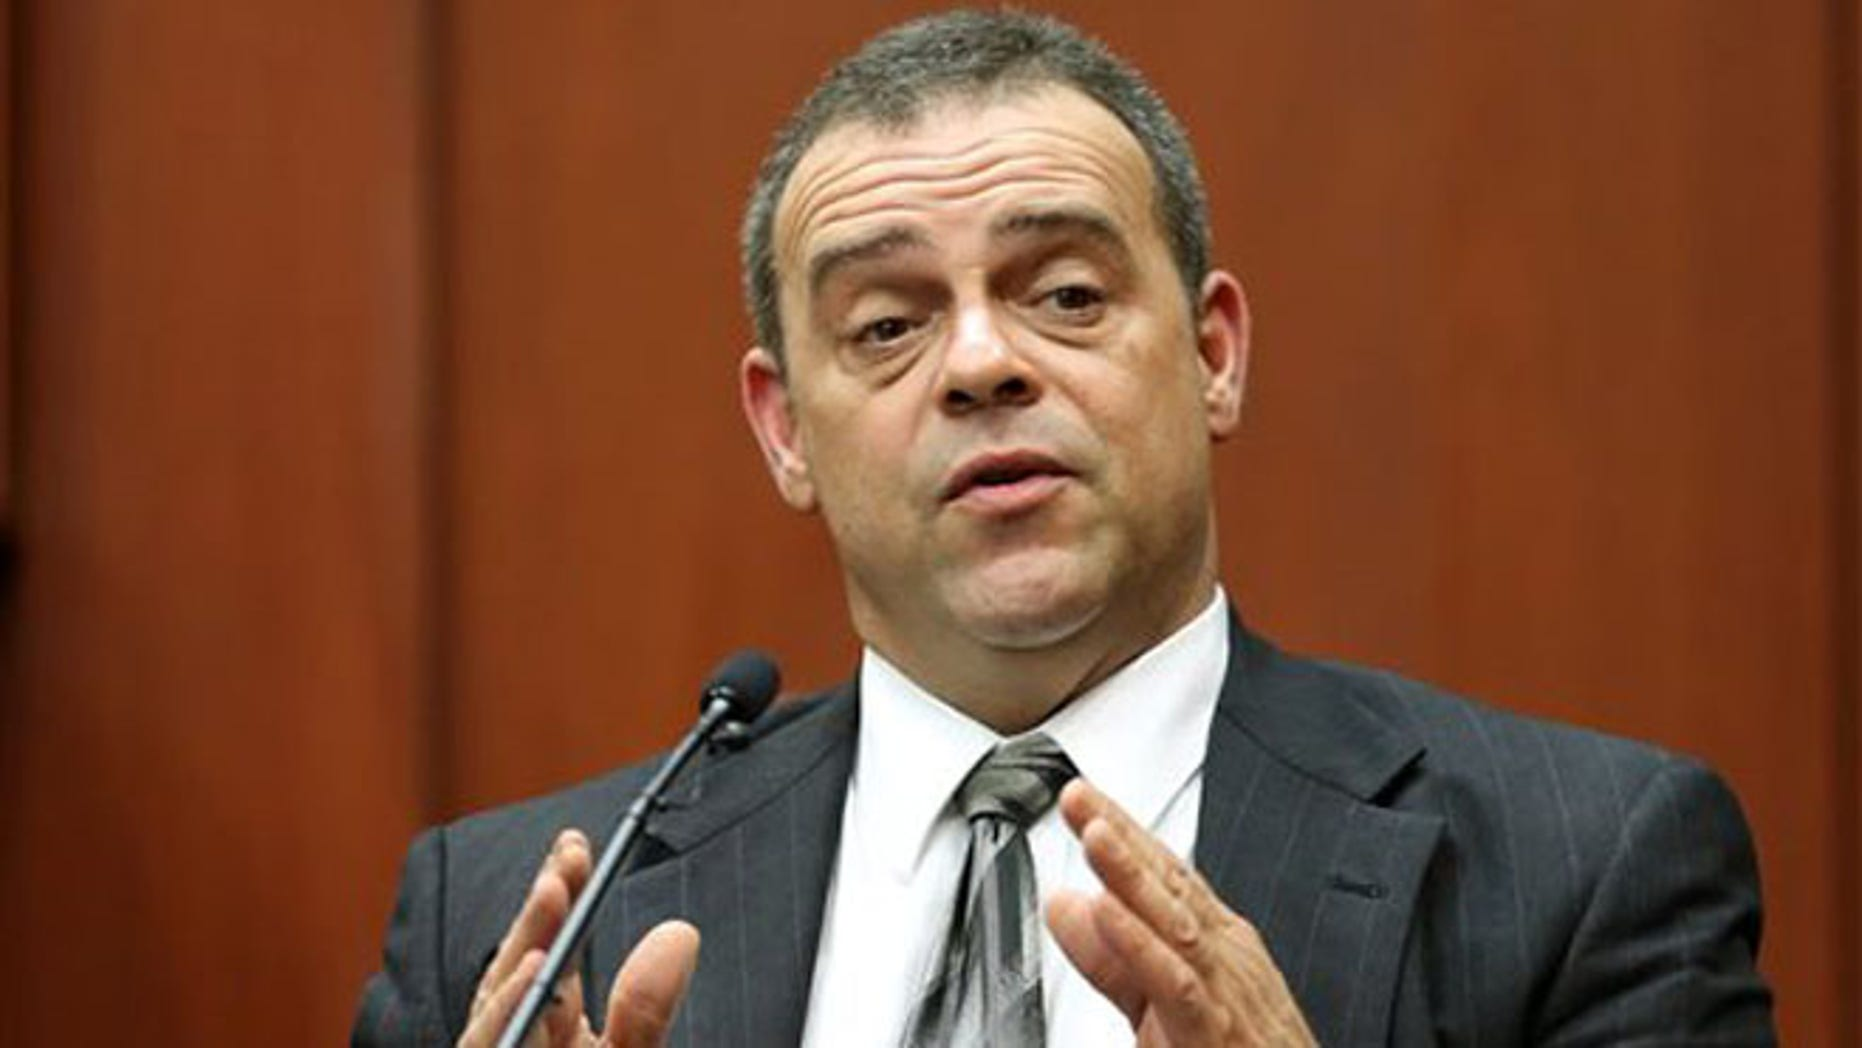 Sanford police officer Chris Serino testifies during the George Zimmerman trial in Seminole Circuit Court, in Sanford, Fla., Monday, July  8, 2013.